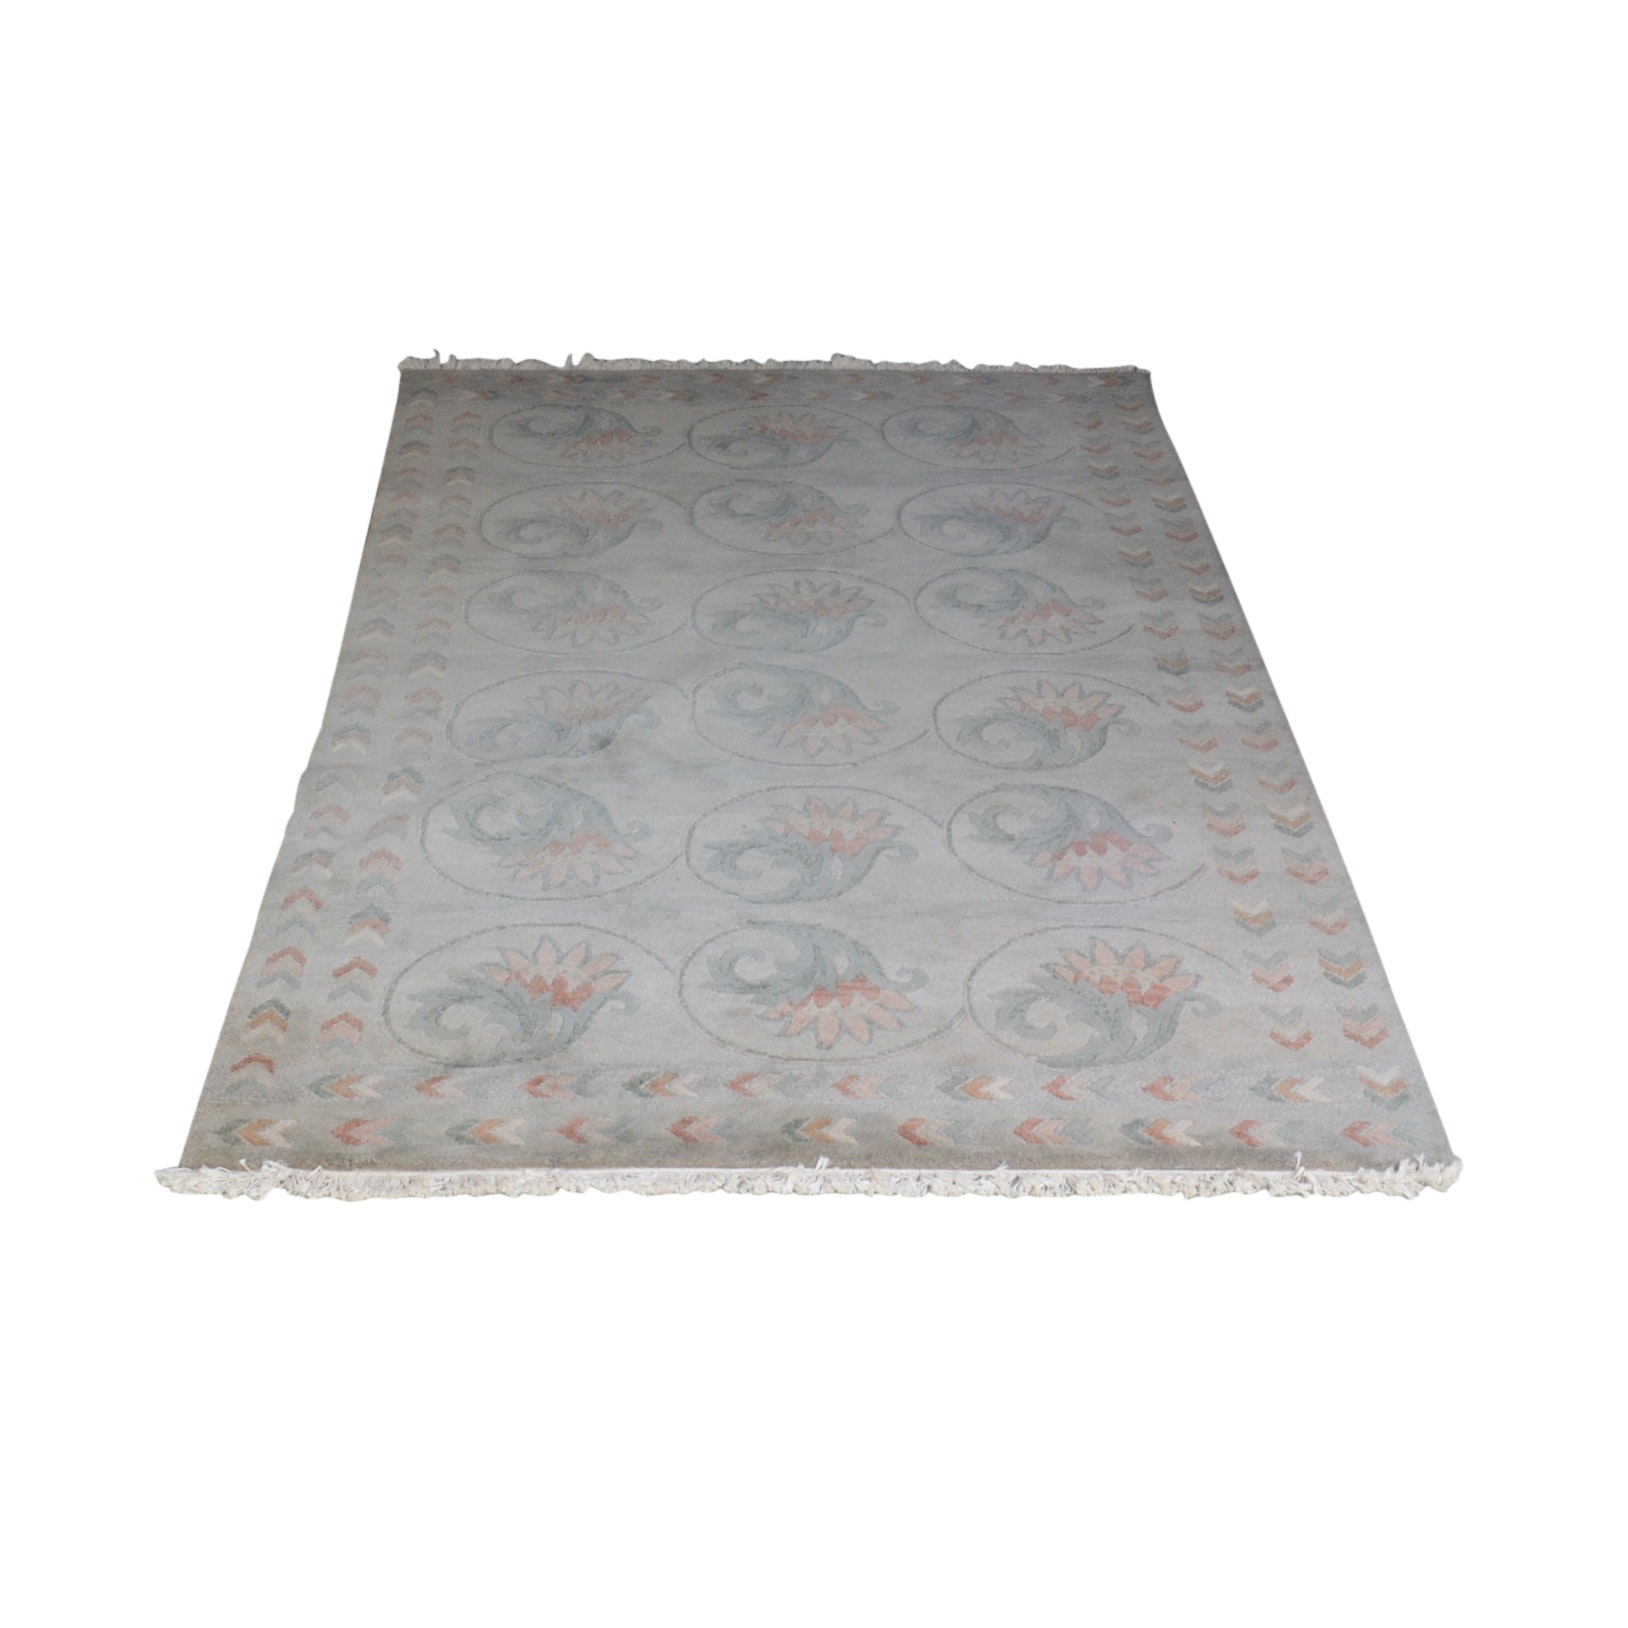 Handwoven Floral Wool Area Rug